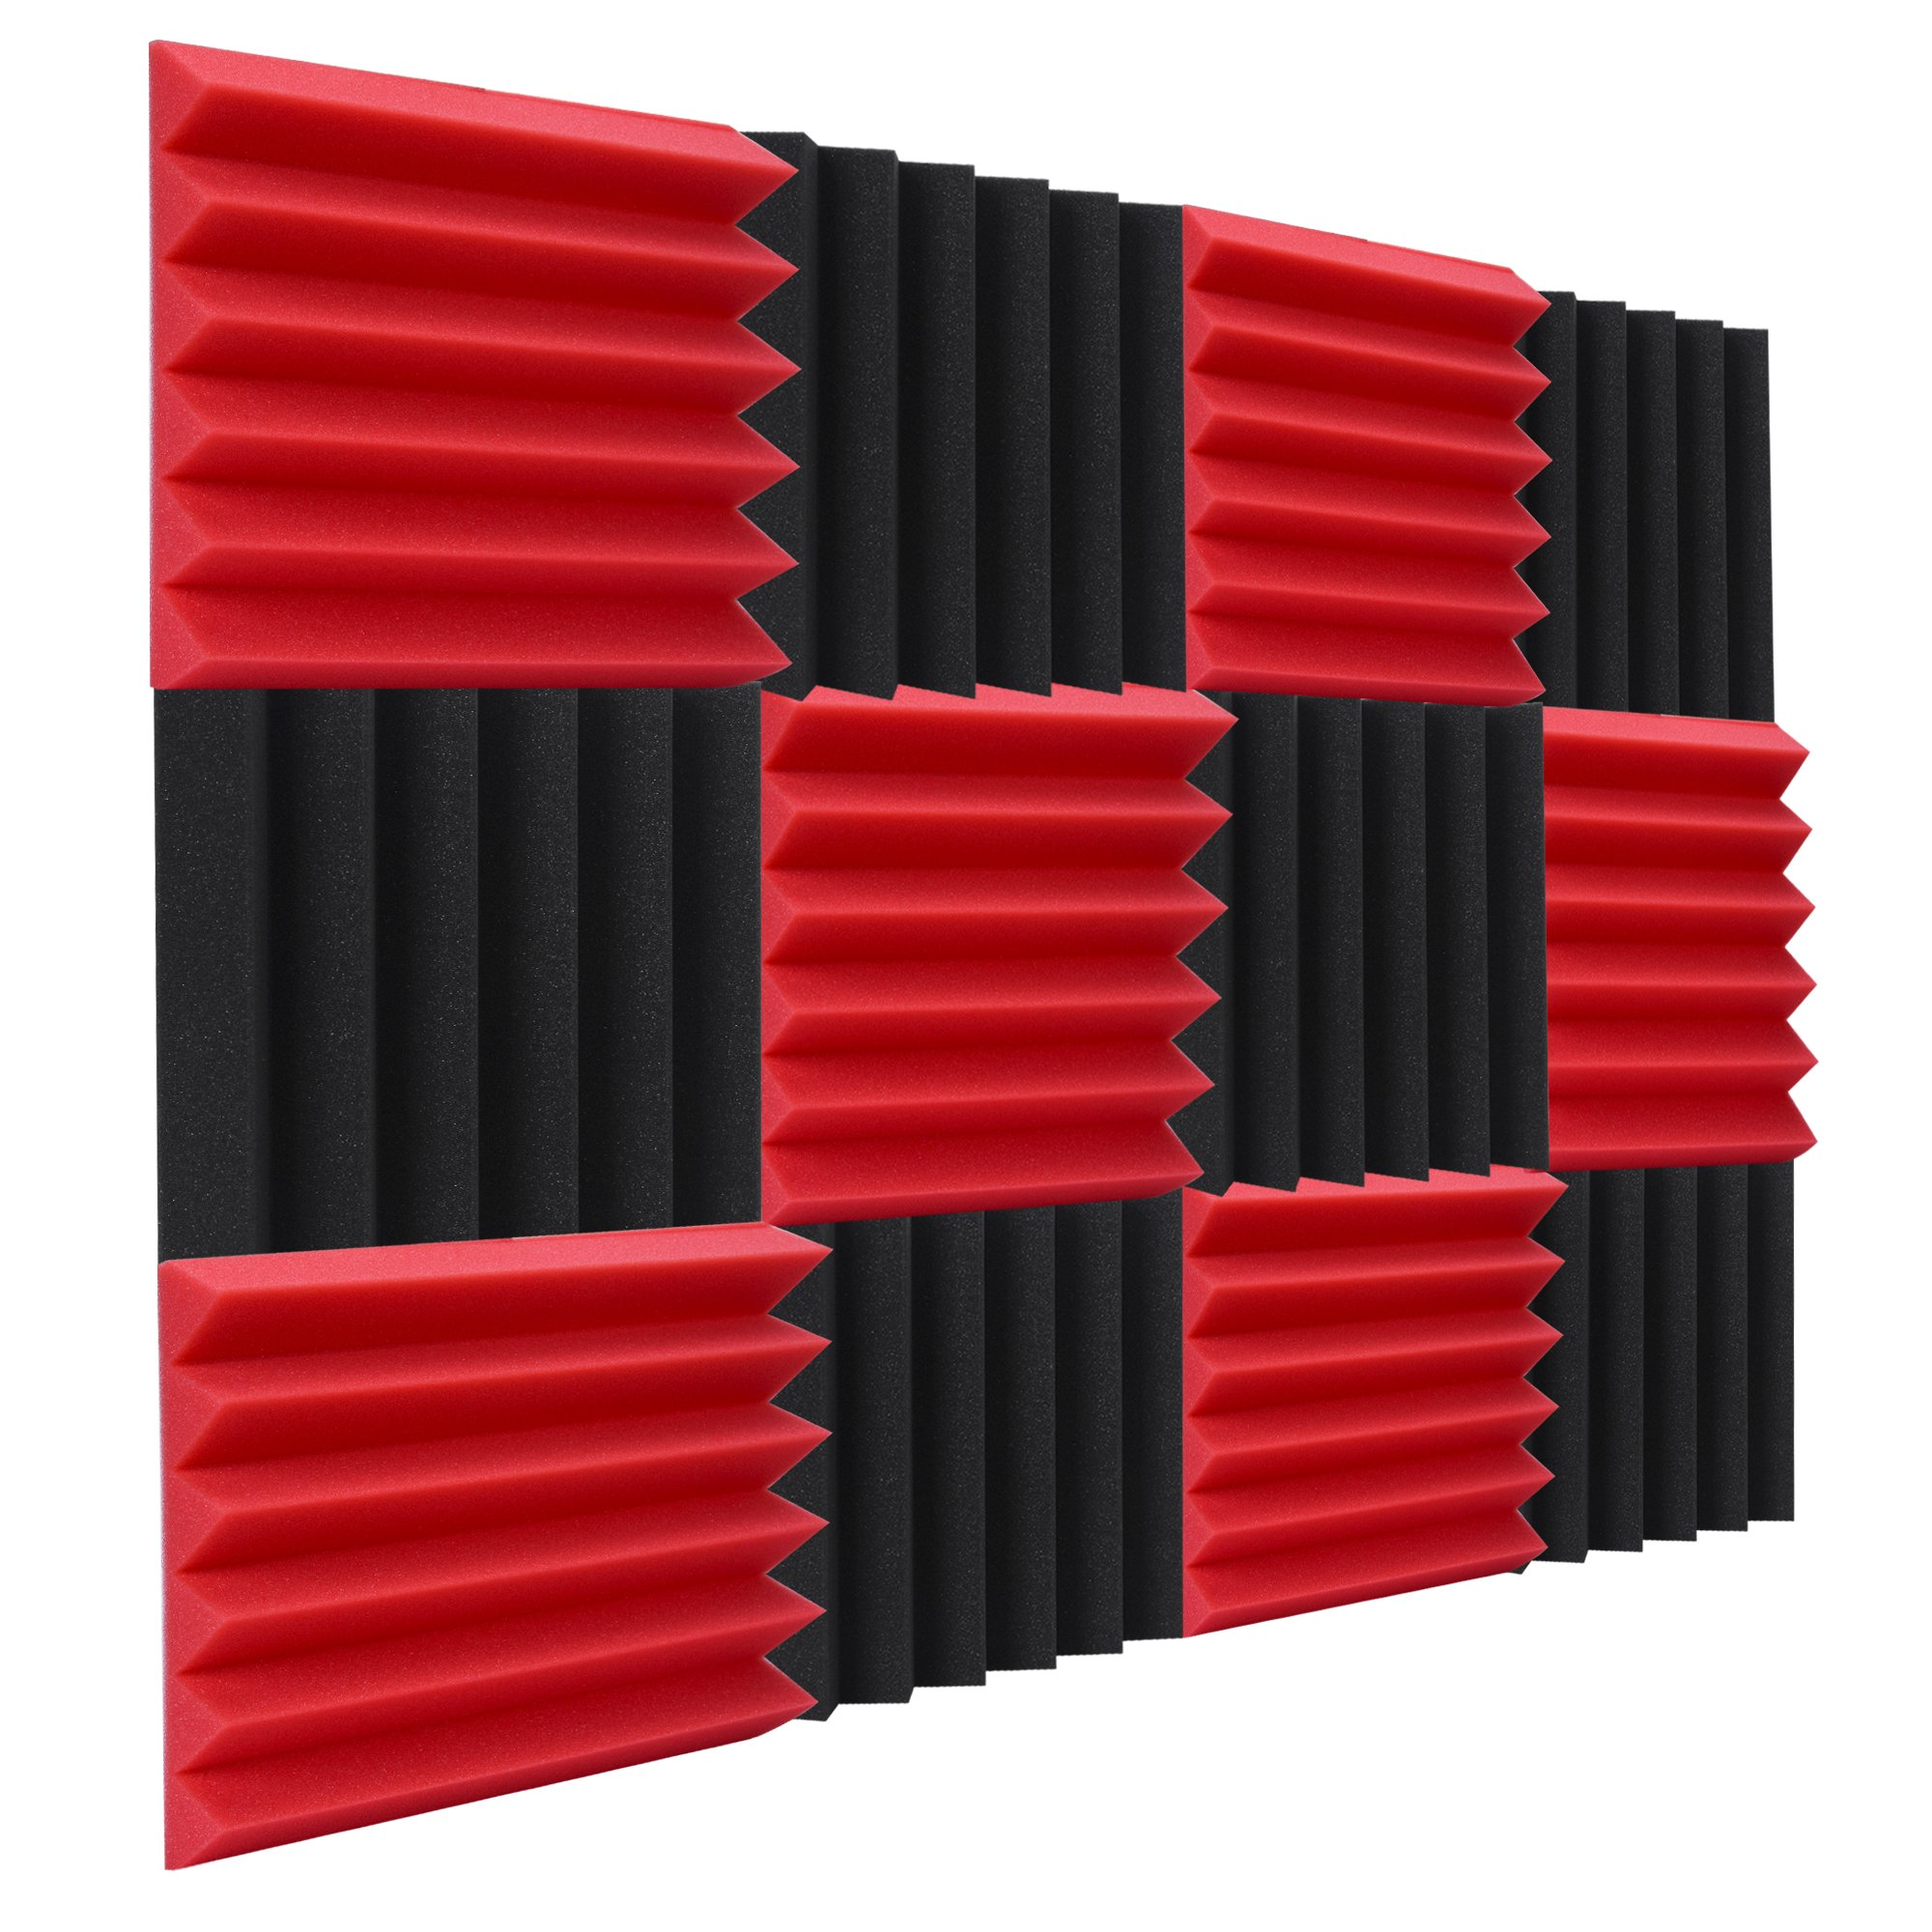 "Double Thick Studio Acoustic Wedge Foam Panels 12 Pk of 12""x12""x2"" (Red/Charcoal) by NRG Acoustic to Remove Noise, Enhance Sound. Wall Foam Panels, Sound Proof Padding for Studios Vloggers, and More."